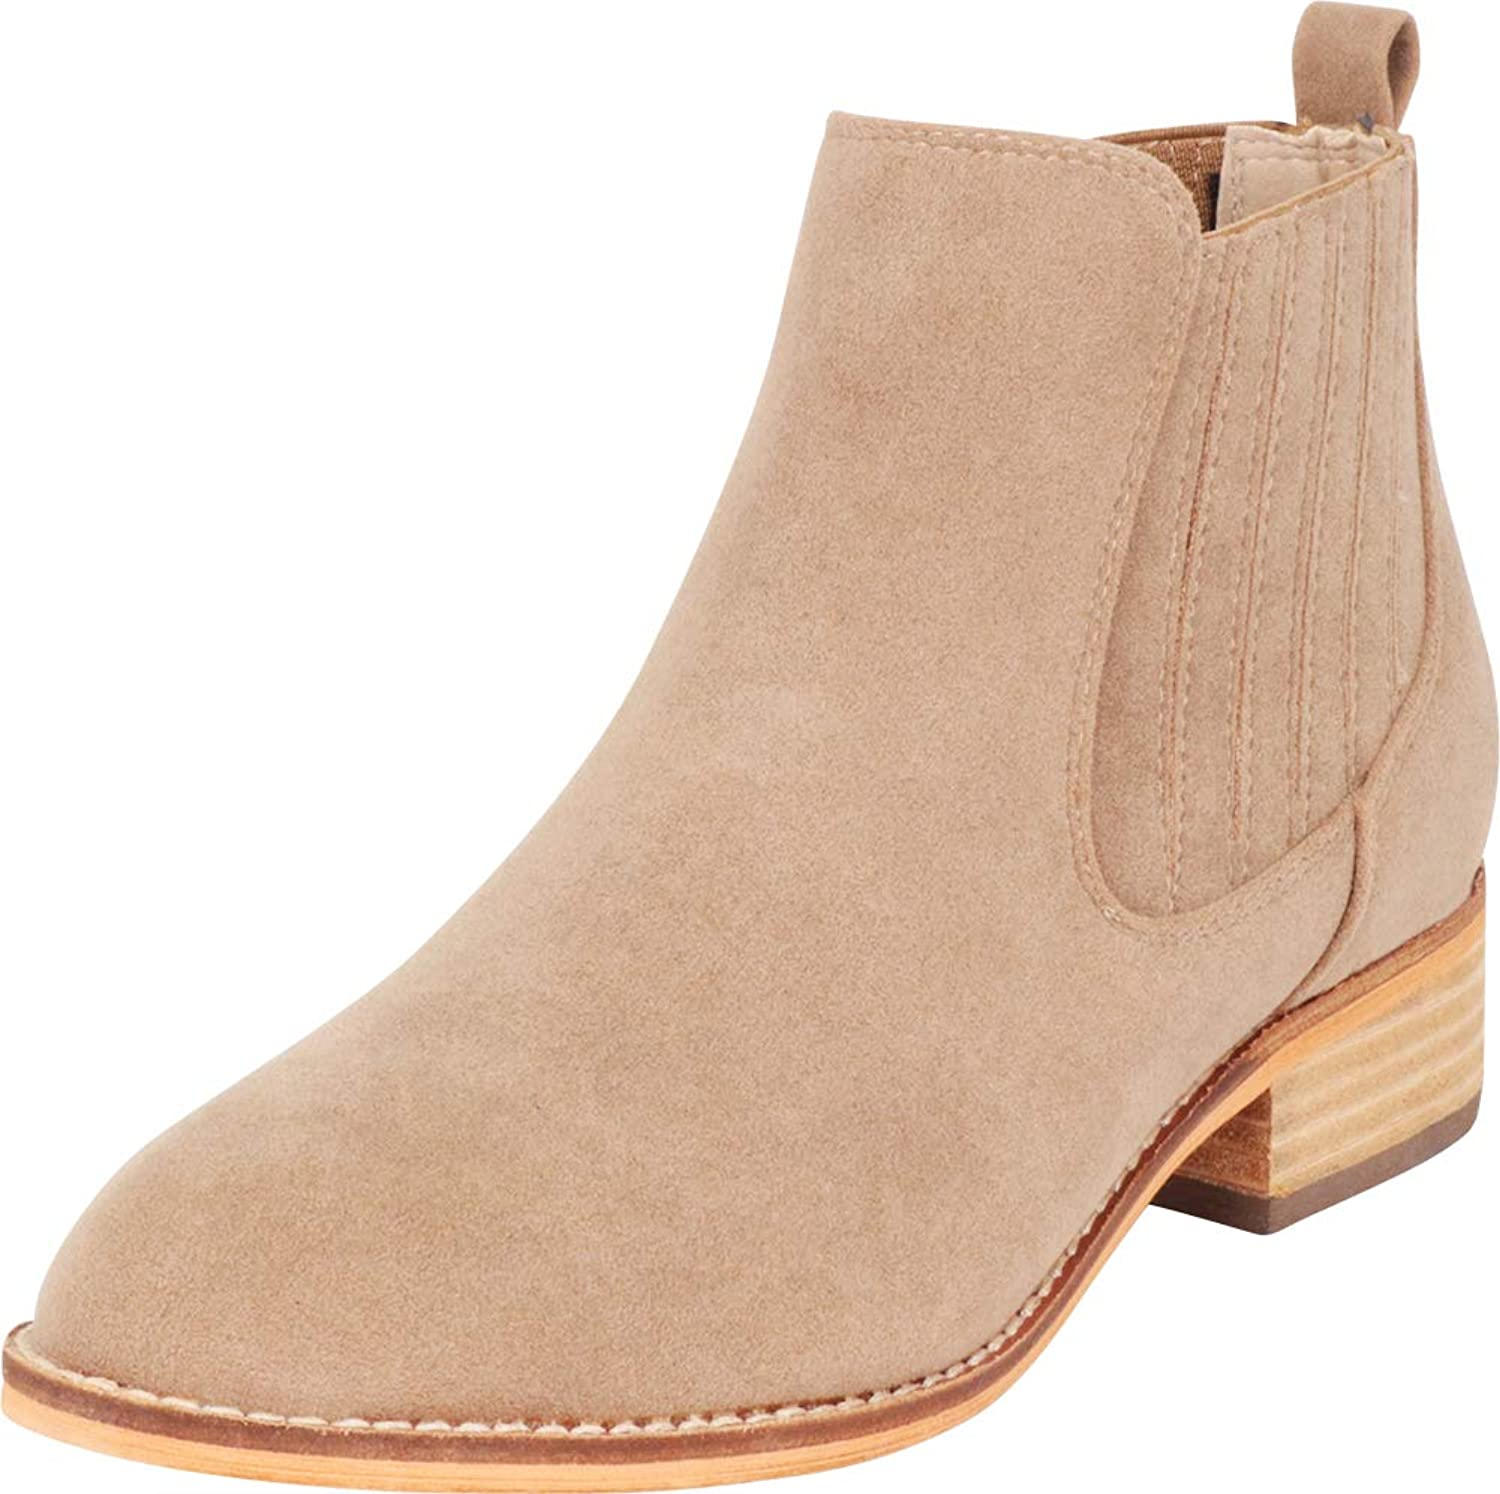 Cambridge Select Women's Classic Side Stretch Low Stacked Heel Ankle Bootie